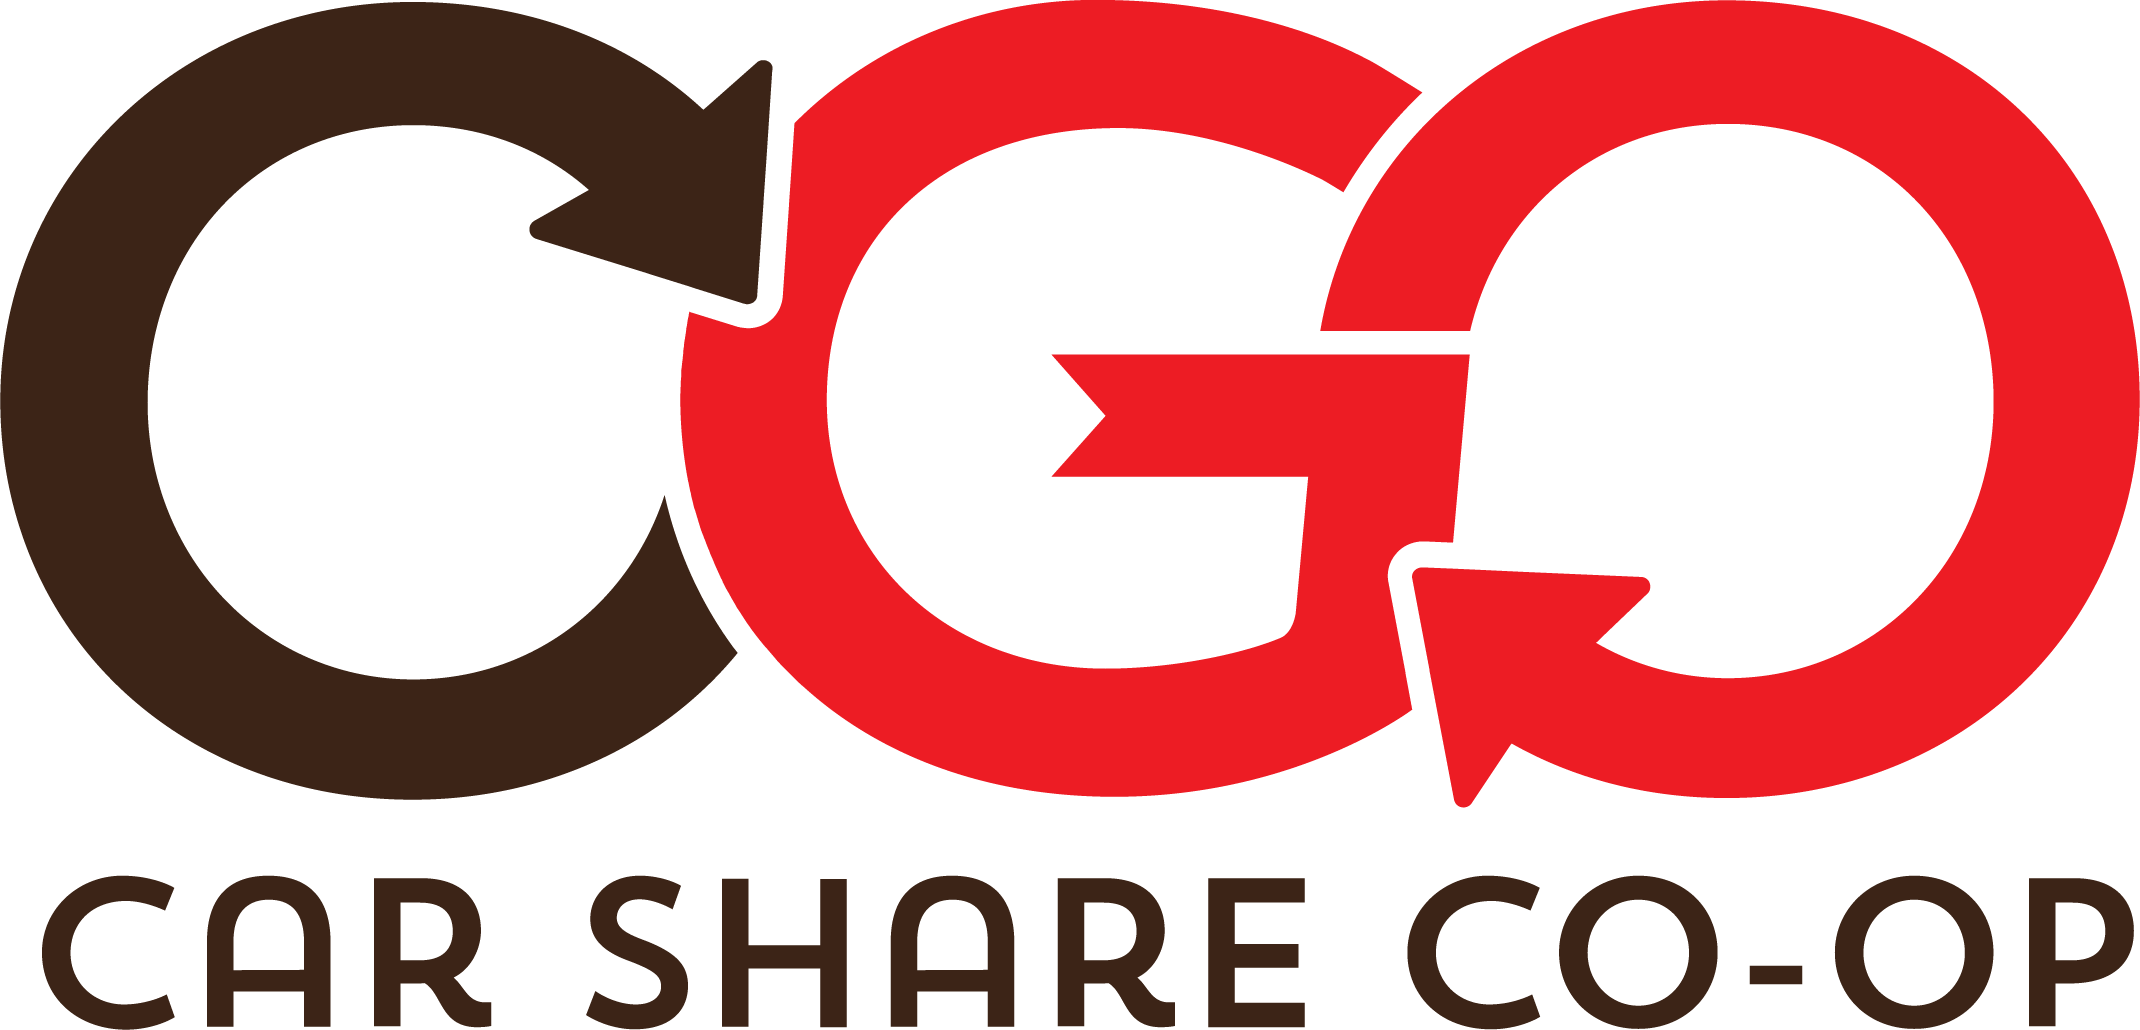 OGO Car Share